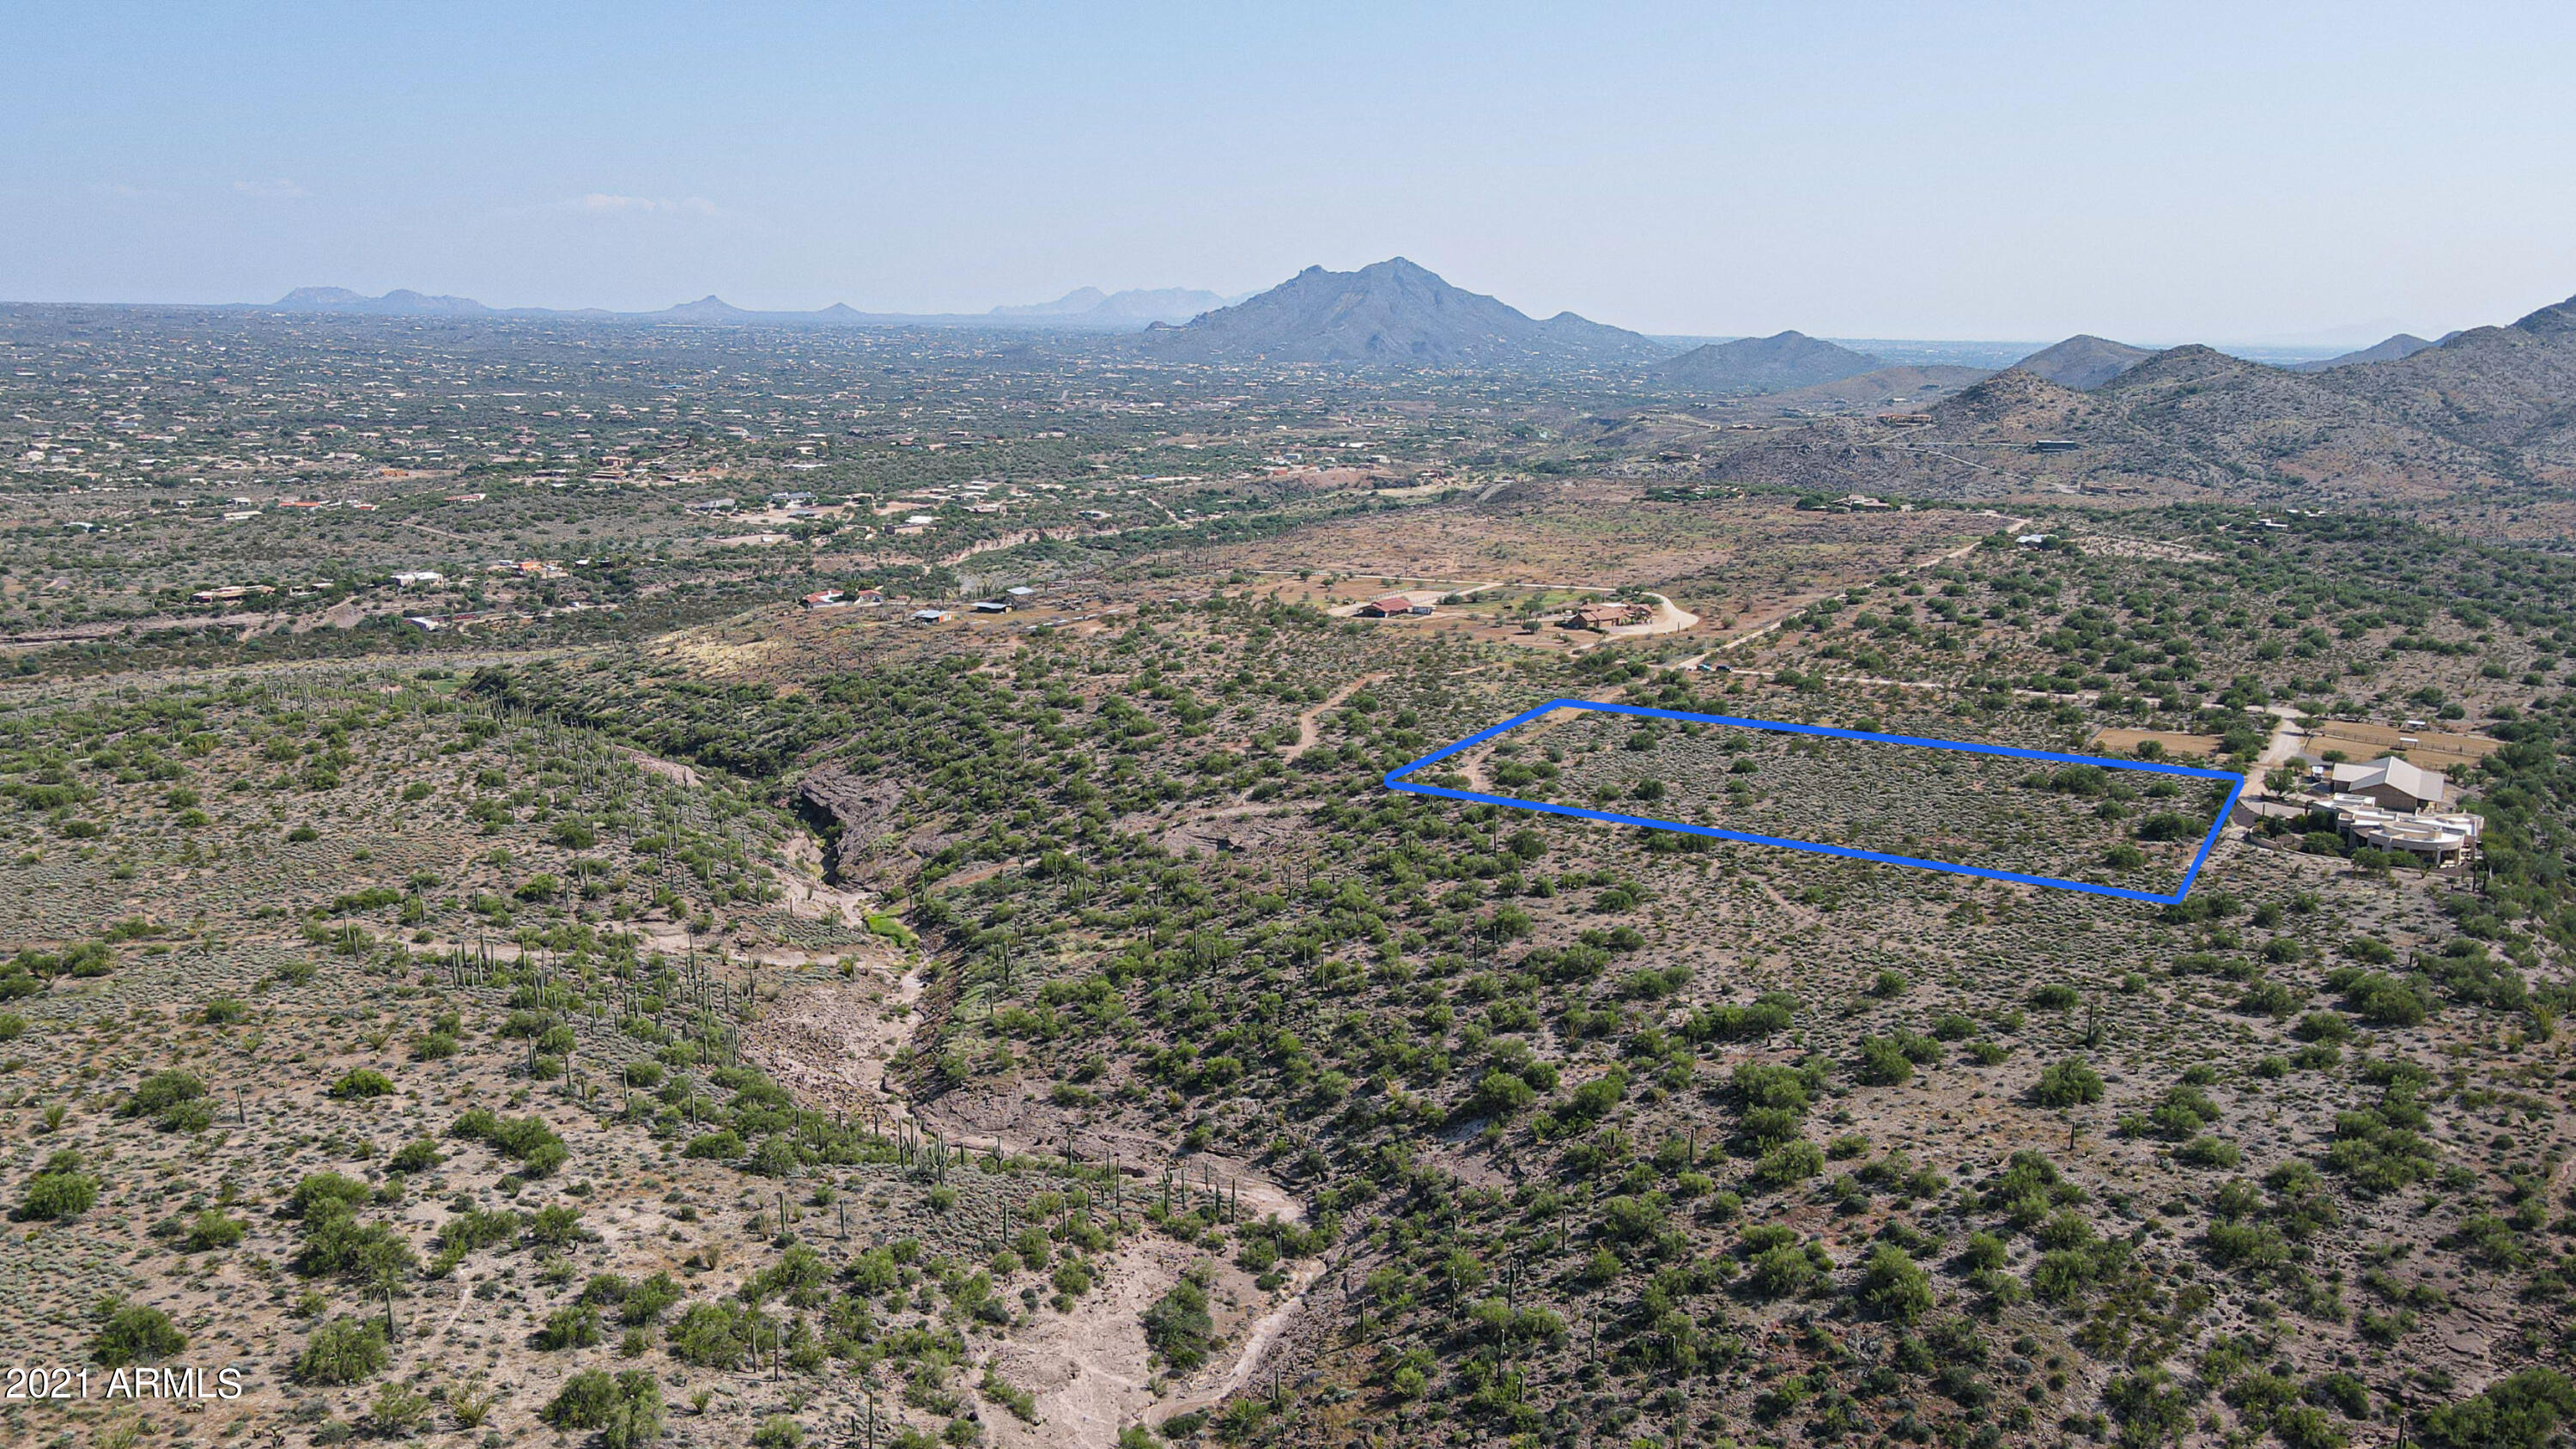 Looking down upon Cave Creek Township